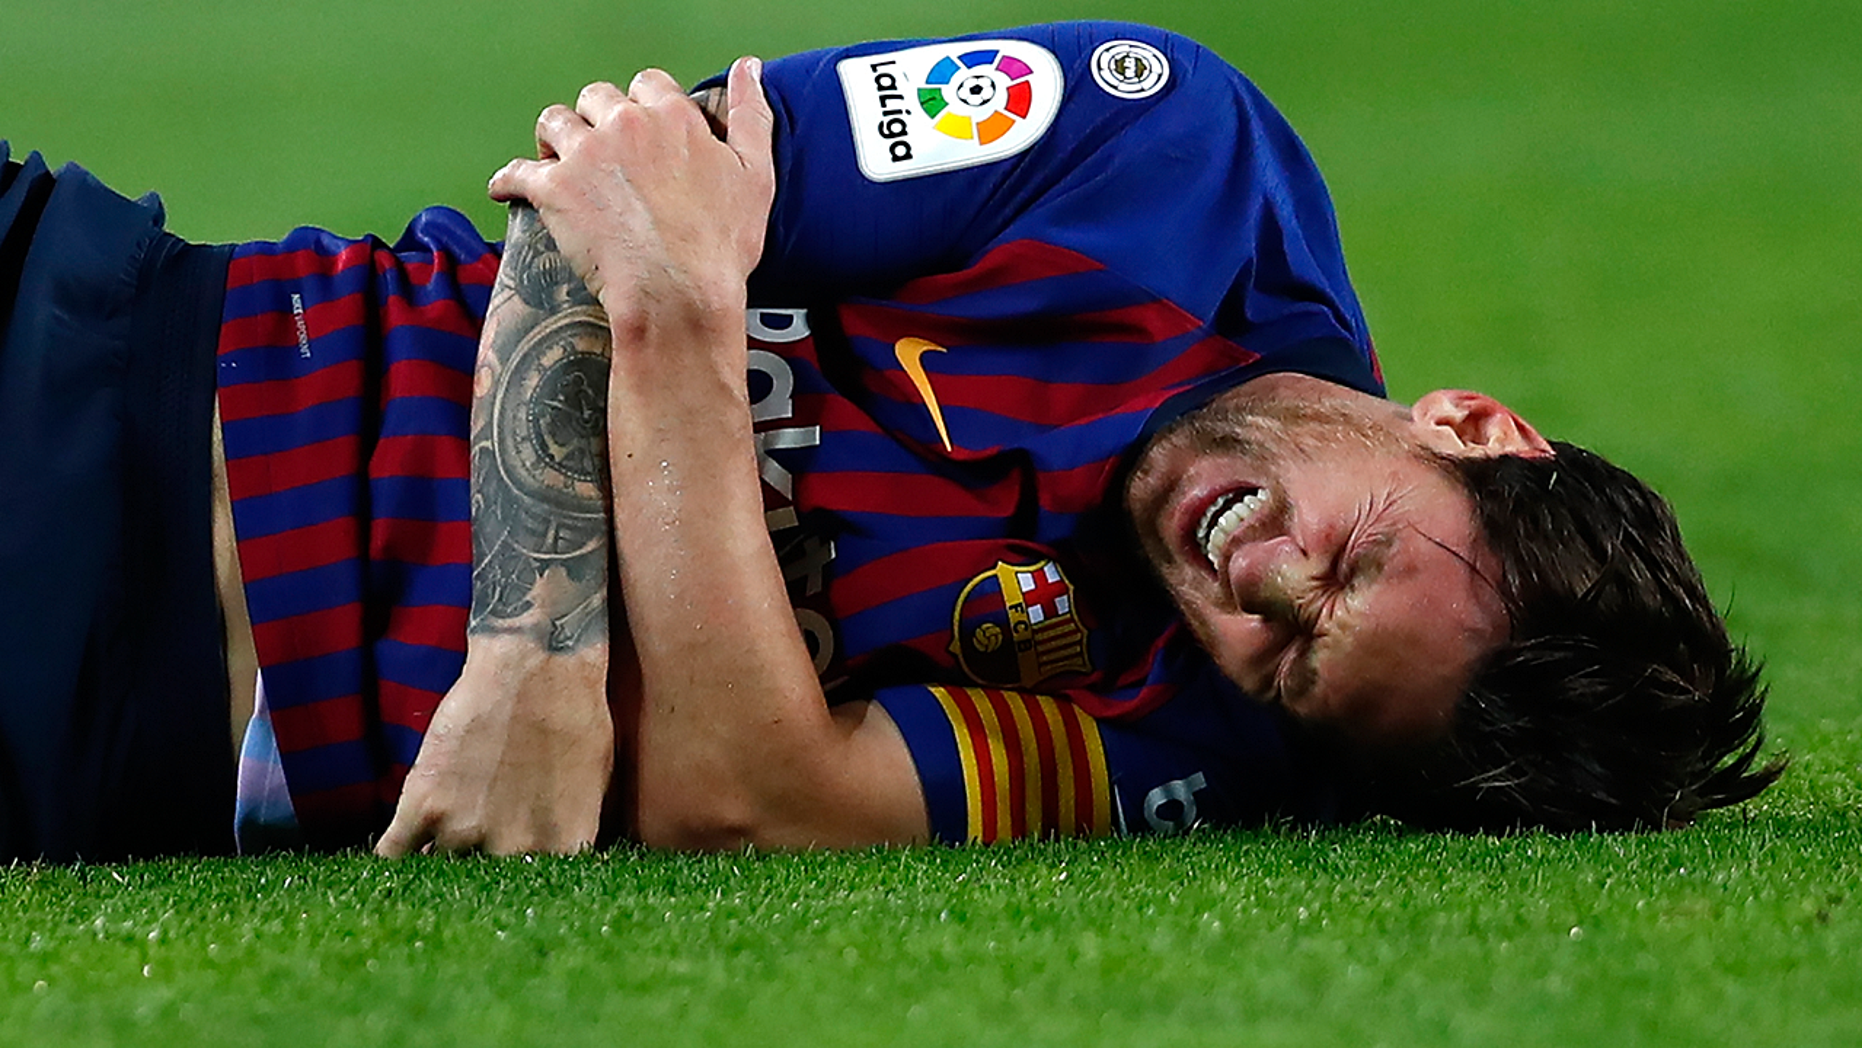 FC Barcelona's Lionel Messi looks painfully injured during the Spanish La Liga soccer match between FC Barcelona and Sevilla at the Camp Nou stadium in Barcelona, Spain, Saturday, Oct. 20, 2018.